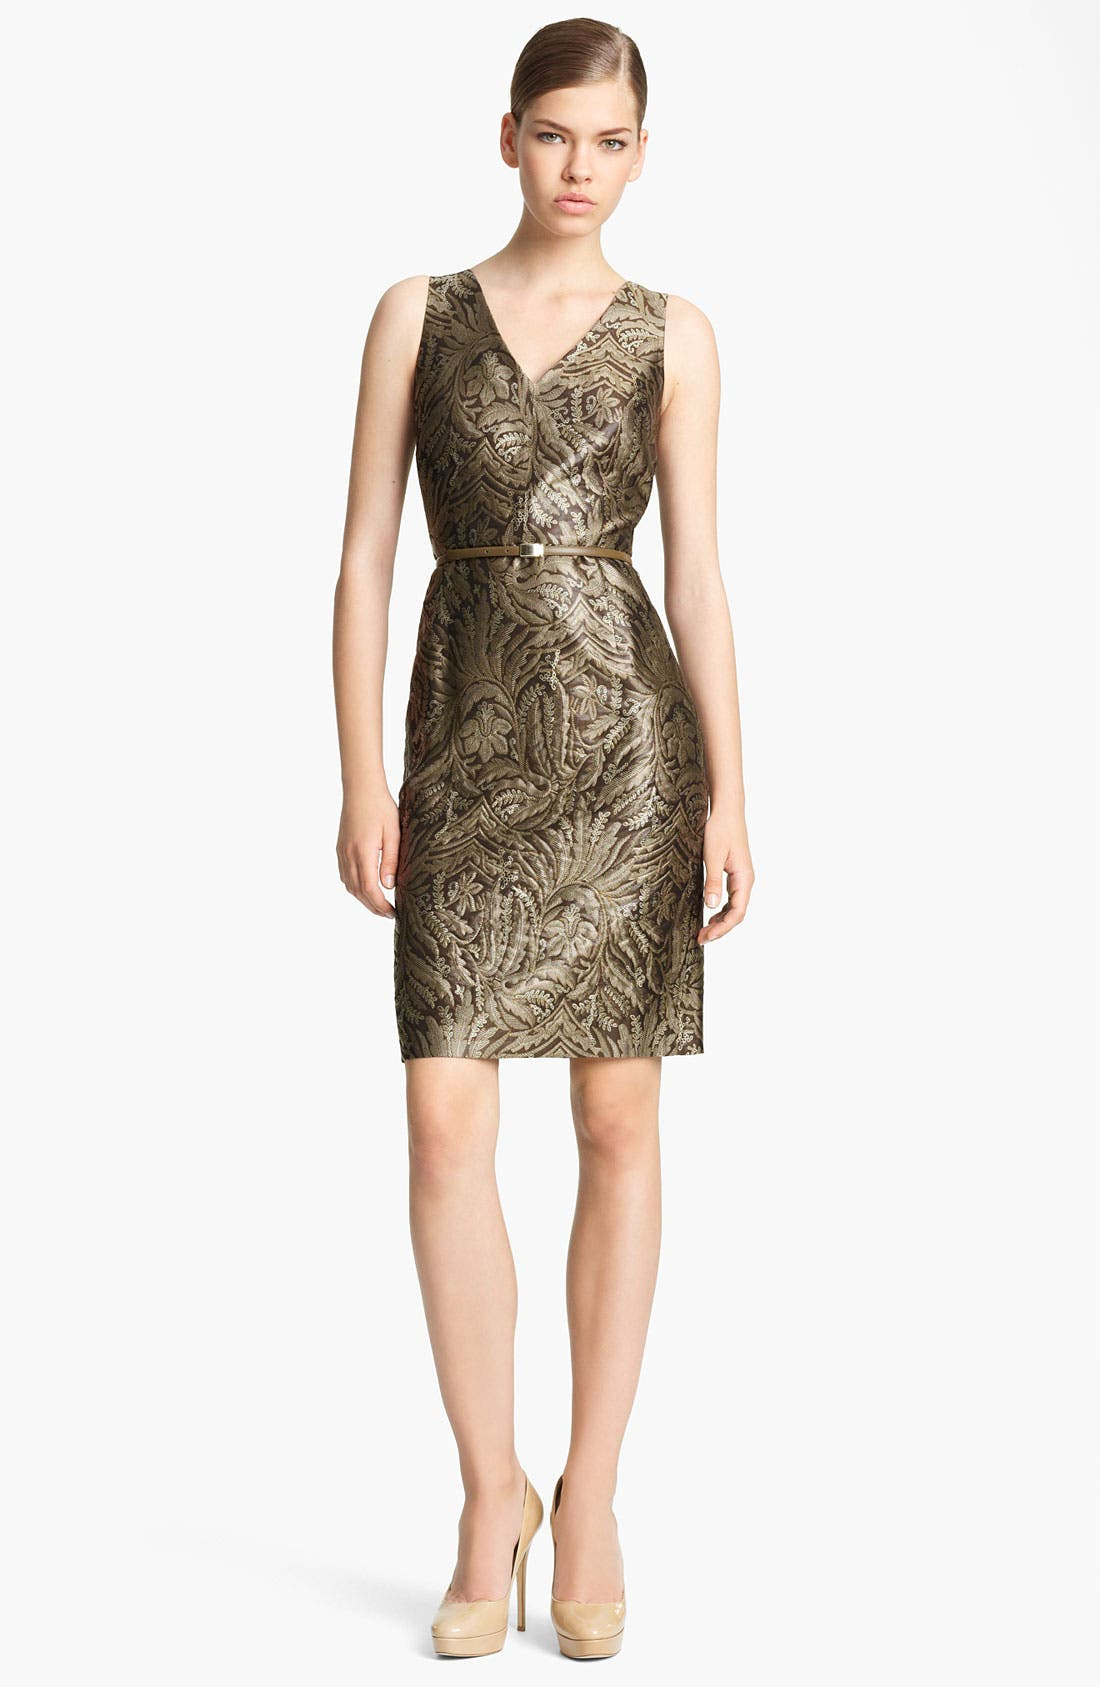 Alternate Image 1 Selected - Max Mara 'Cera' Belted Floral Brocade Dress